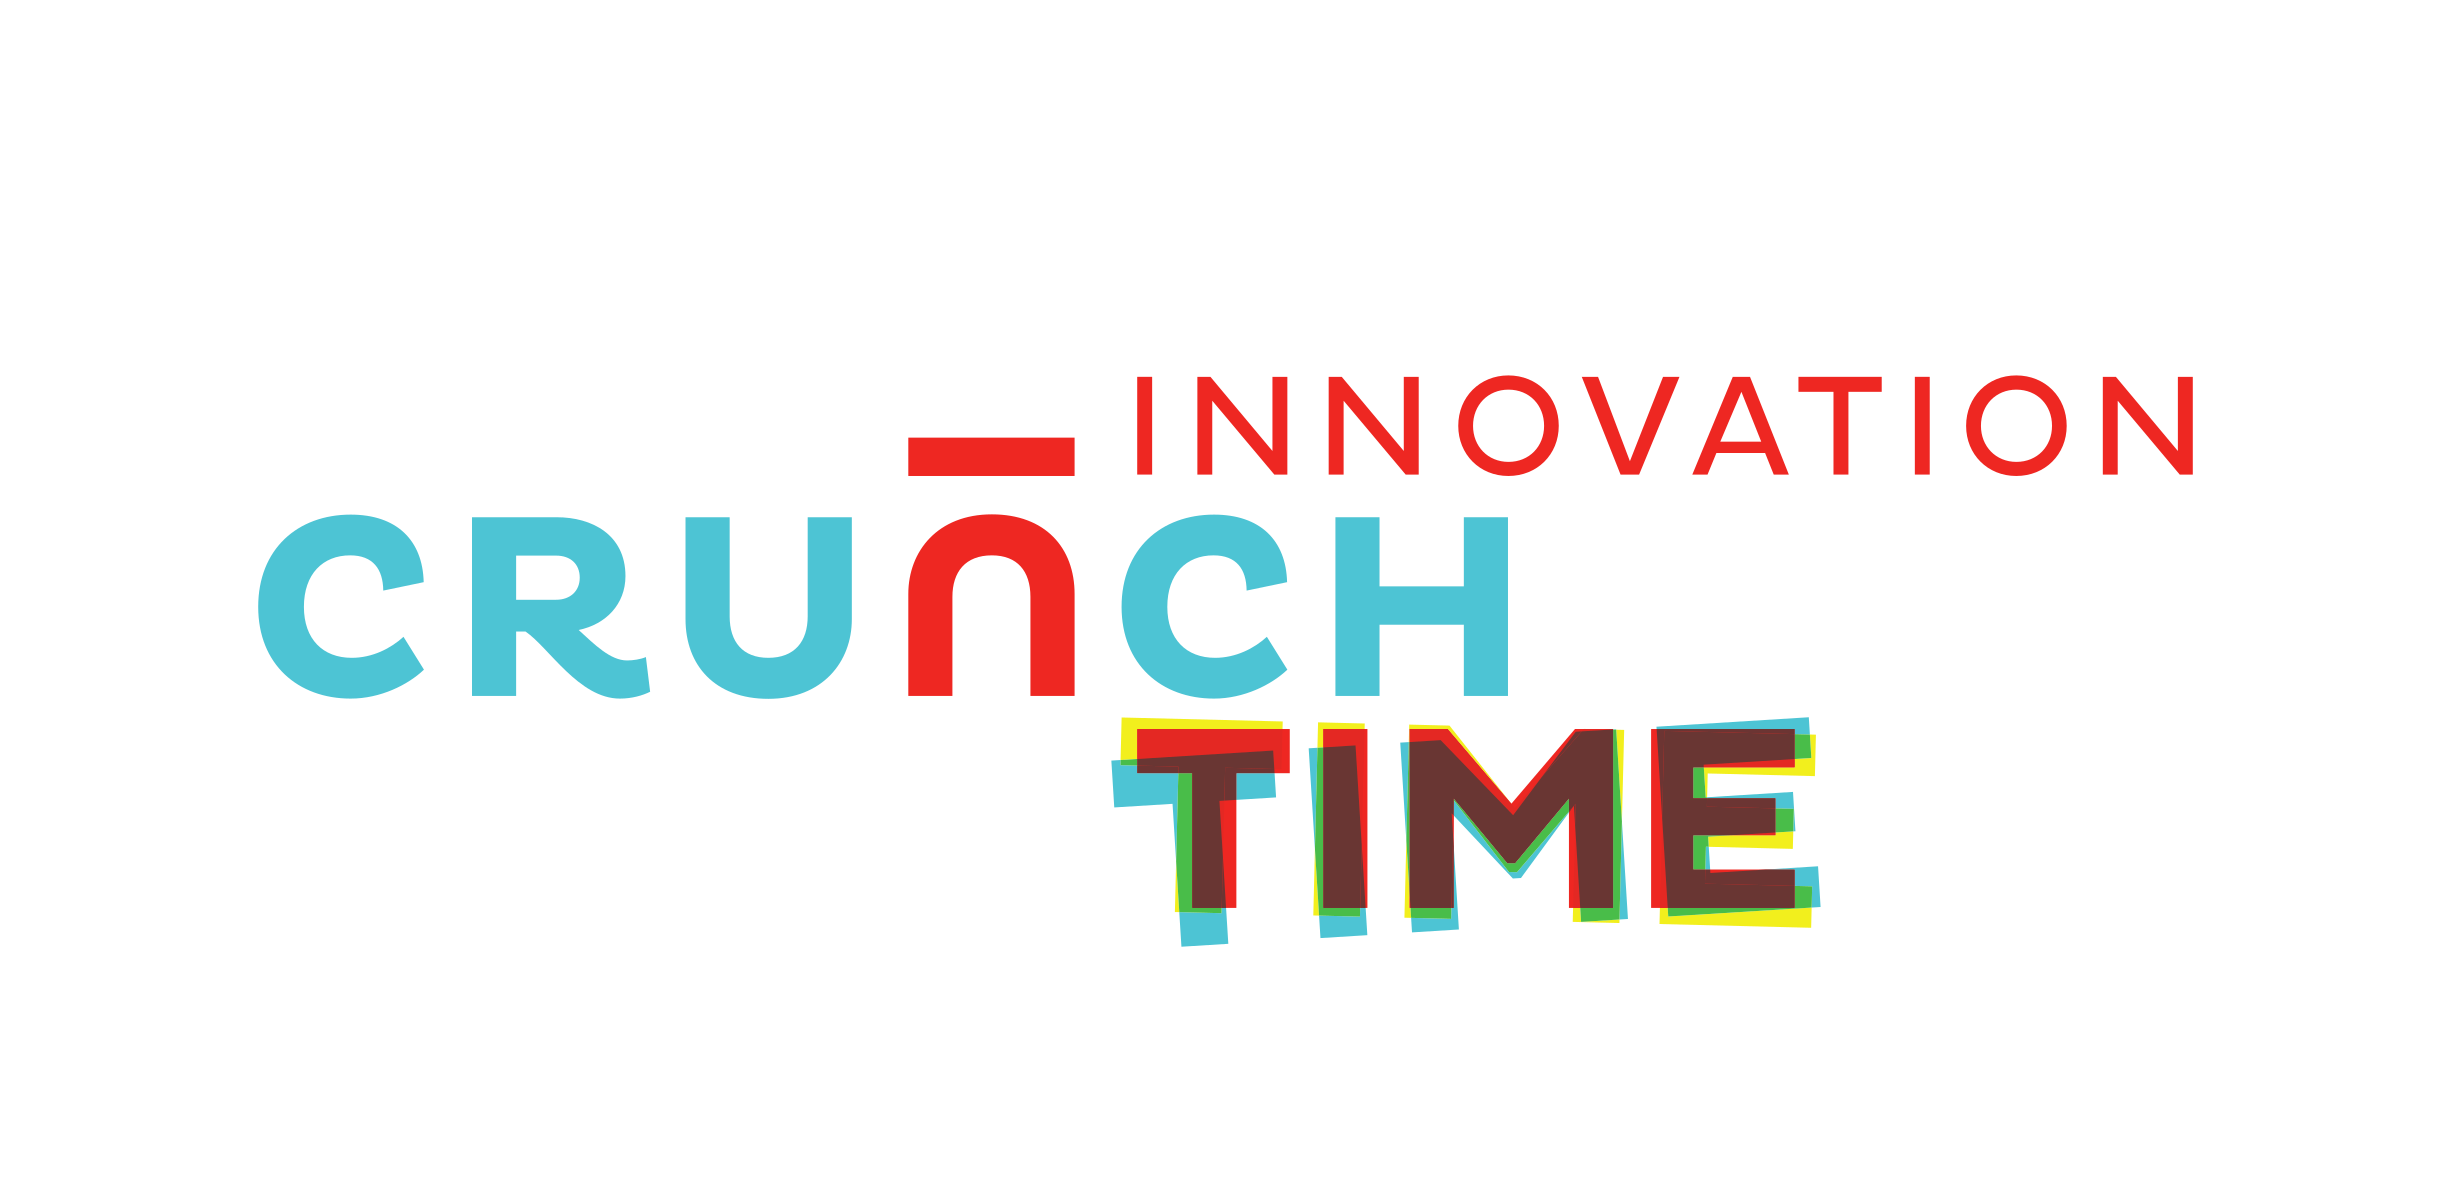 UTBM Innovation Crunch Time